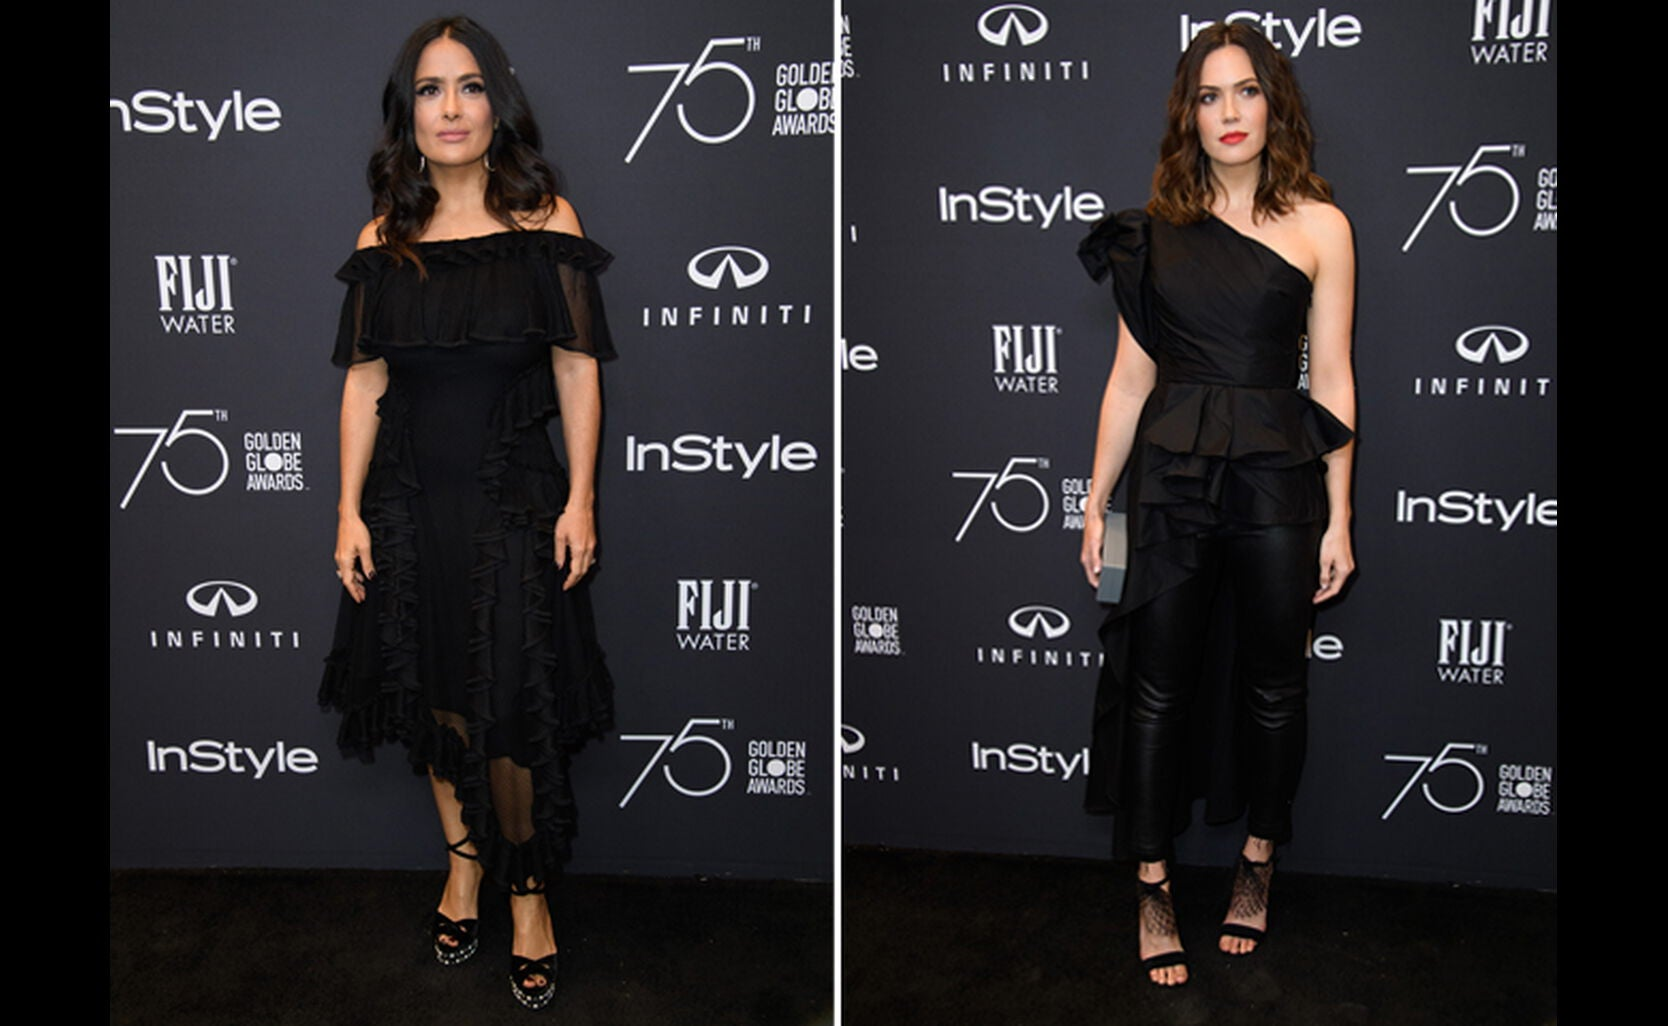 Salma Hayek and Mandy Moore